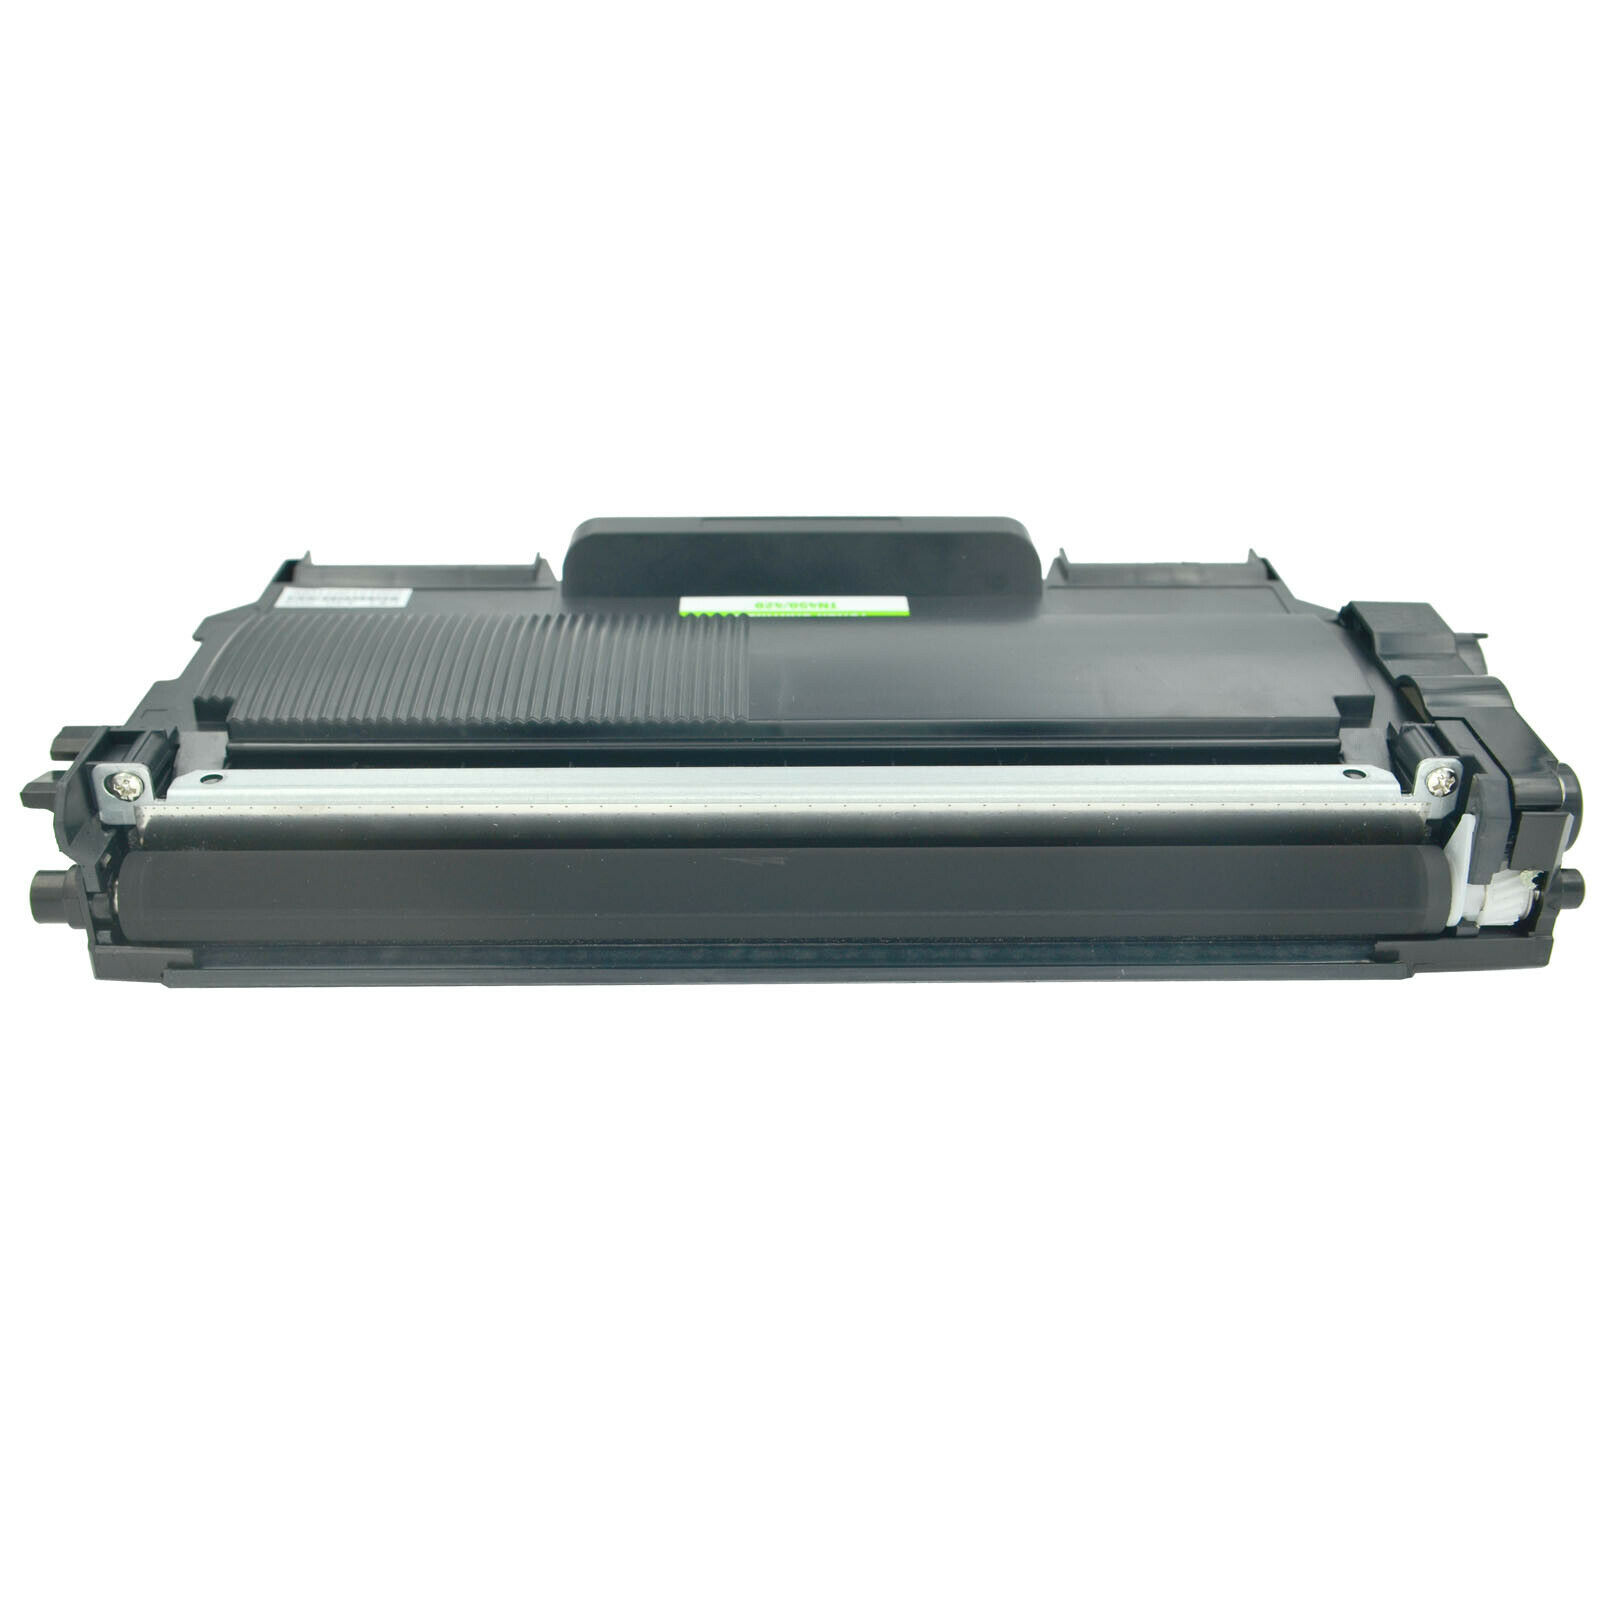 HL-2270 MFC-7360 MFC-7240 FAX-2940 MFC-7860 MFC-7460 FAX-2840 HL-2230 FAX-2845 Supply Spot offers 4 Pack Compatible TN450 Black Toner for Brother DCP-7060 HL-2242 FAX-2840 HL-2250 DCP-7070 HL-2220 HL-2240 FAX-2940 DCP-7065 HL-2280 Print